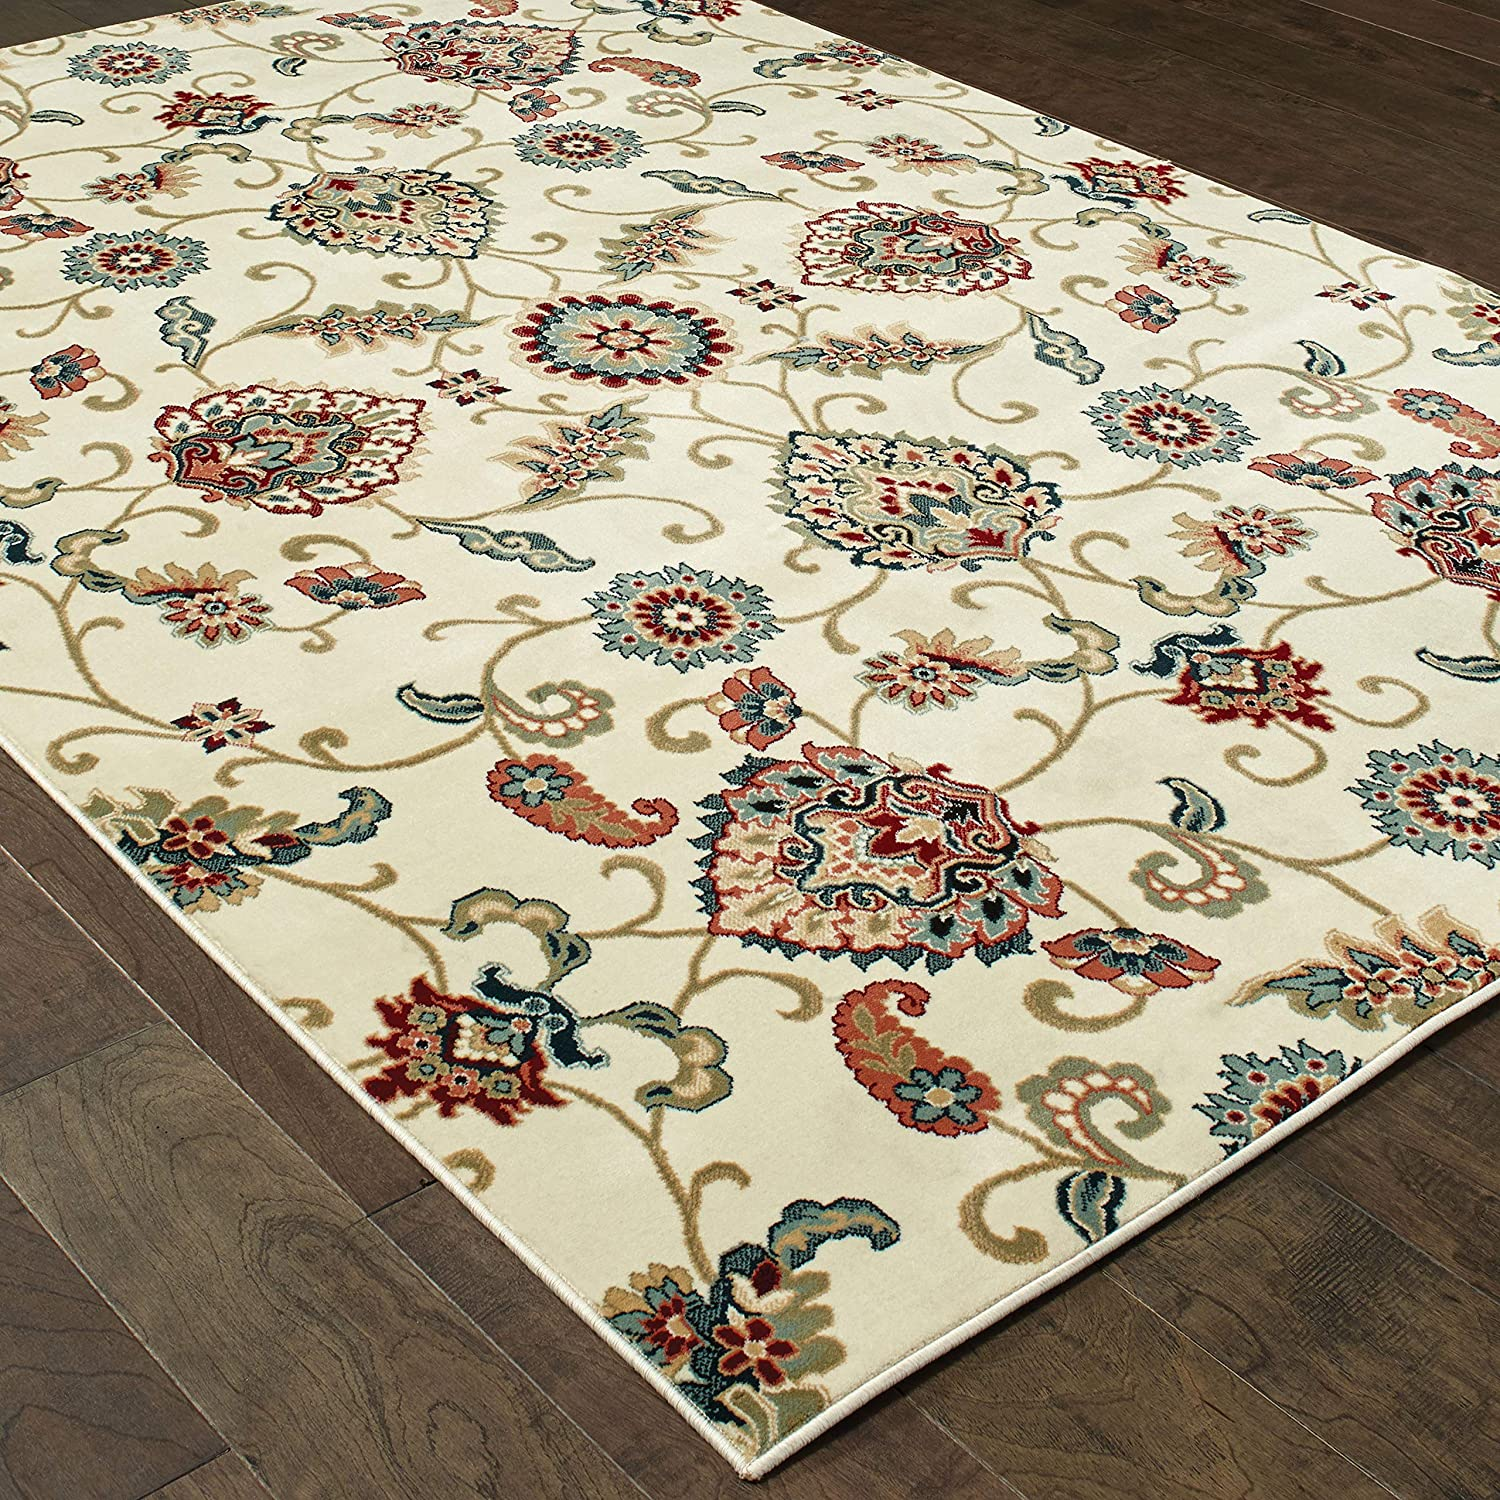 Christopher Knight Home CK-W6499 Kingsley Floral Indoor Area Rug 7ft 10in X 10ft 10in Ivory Multi